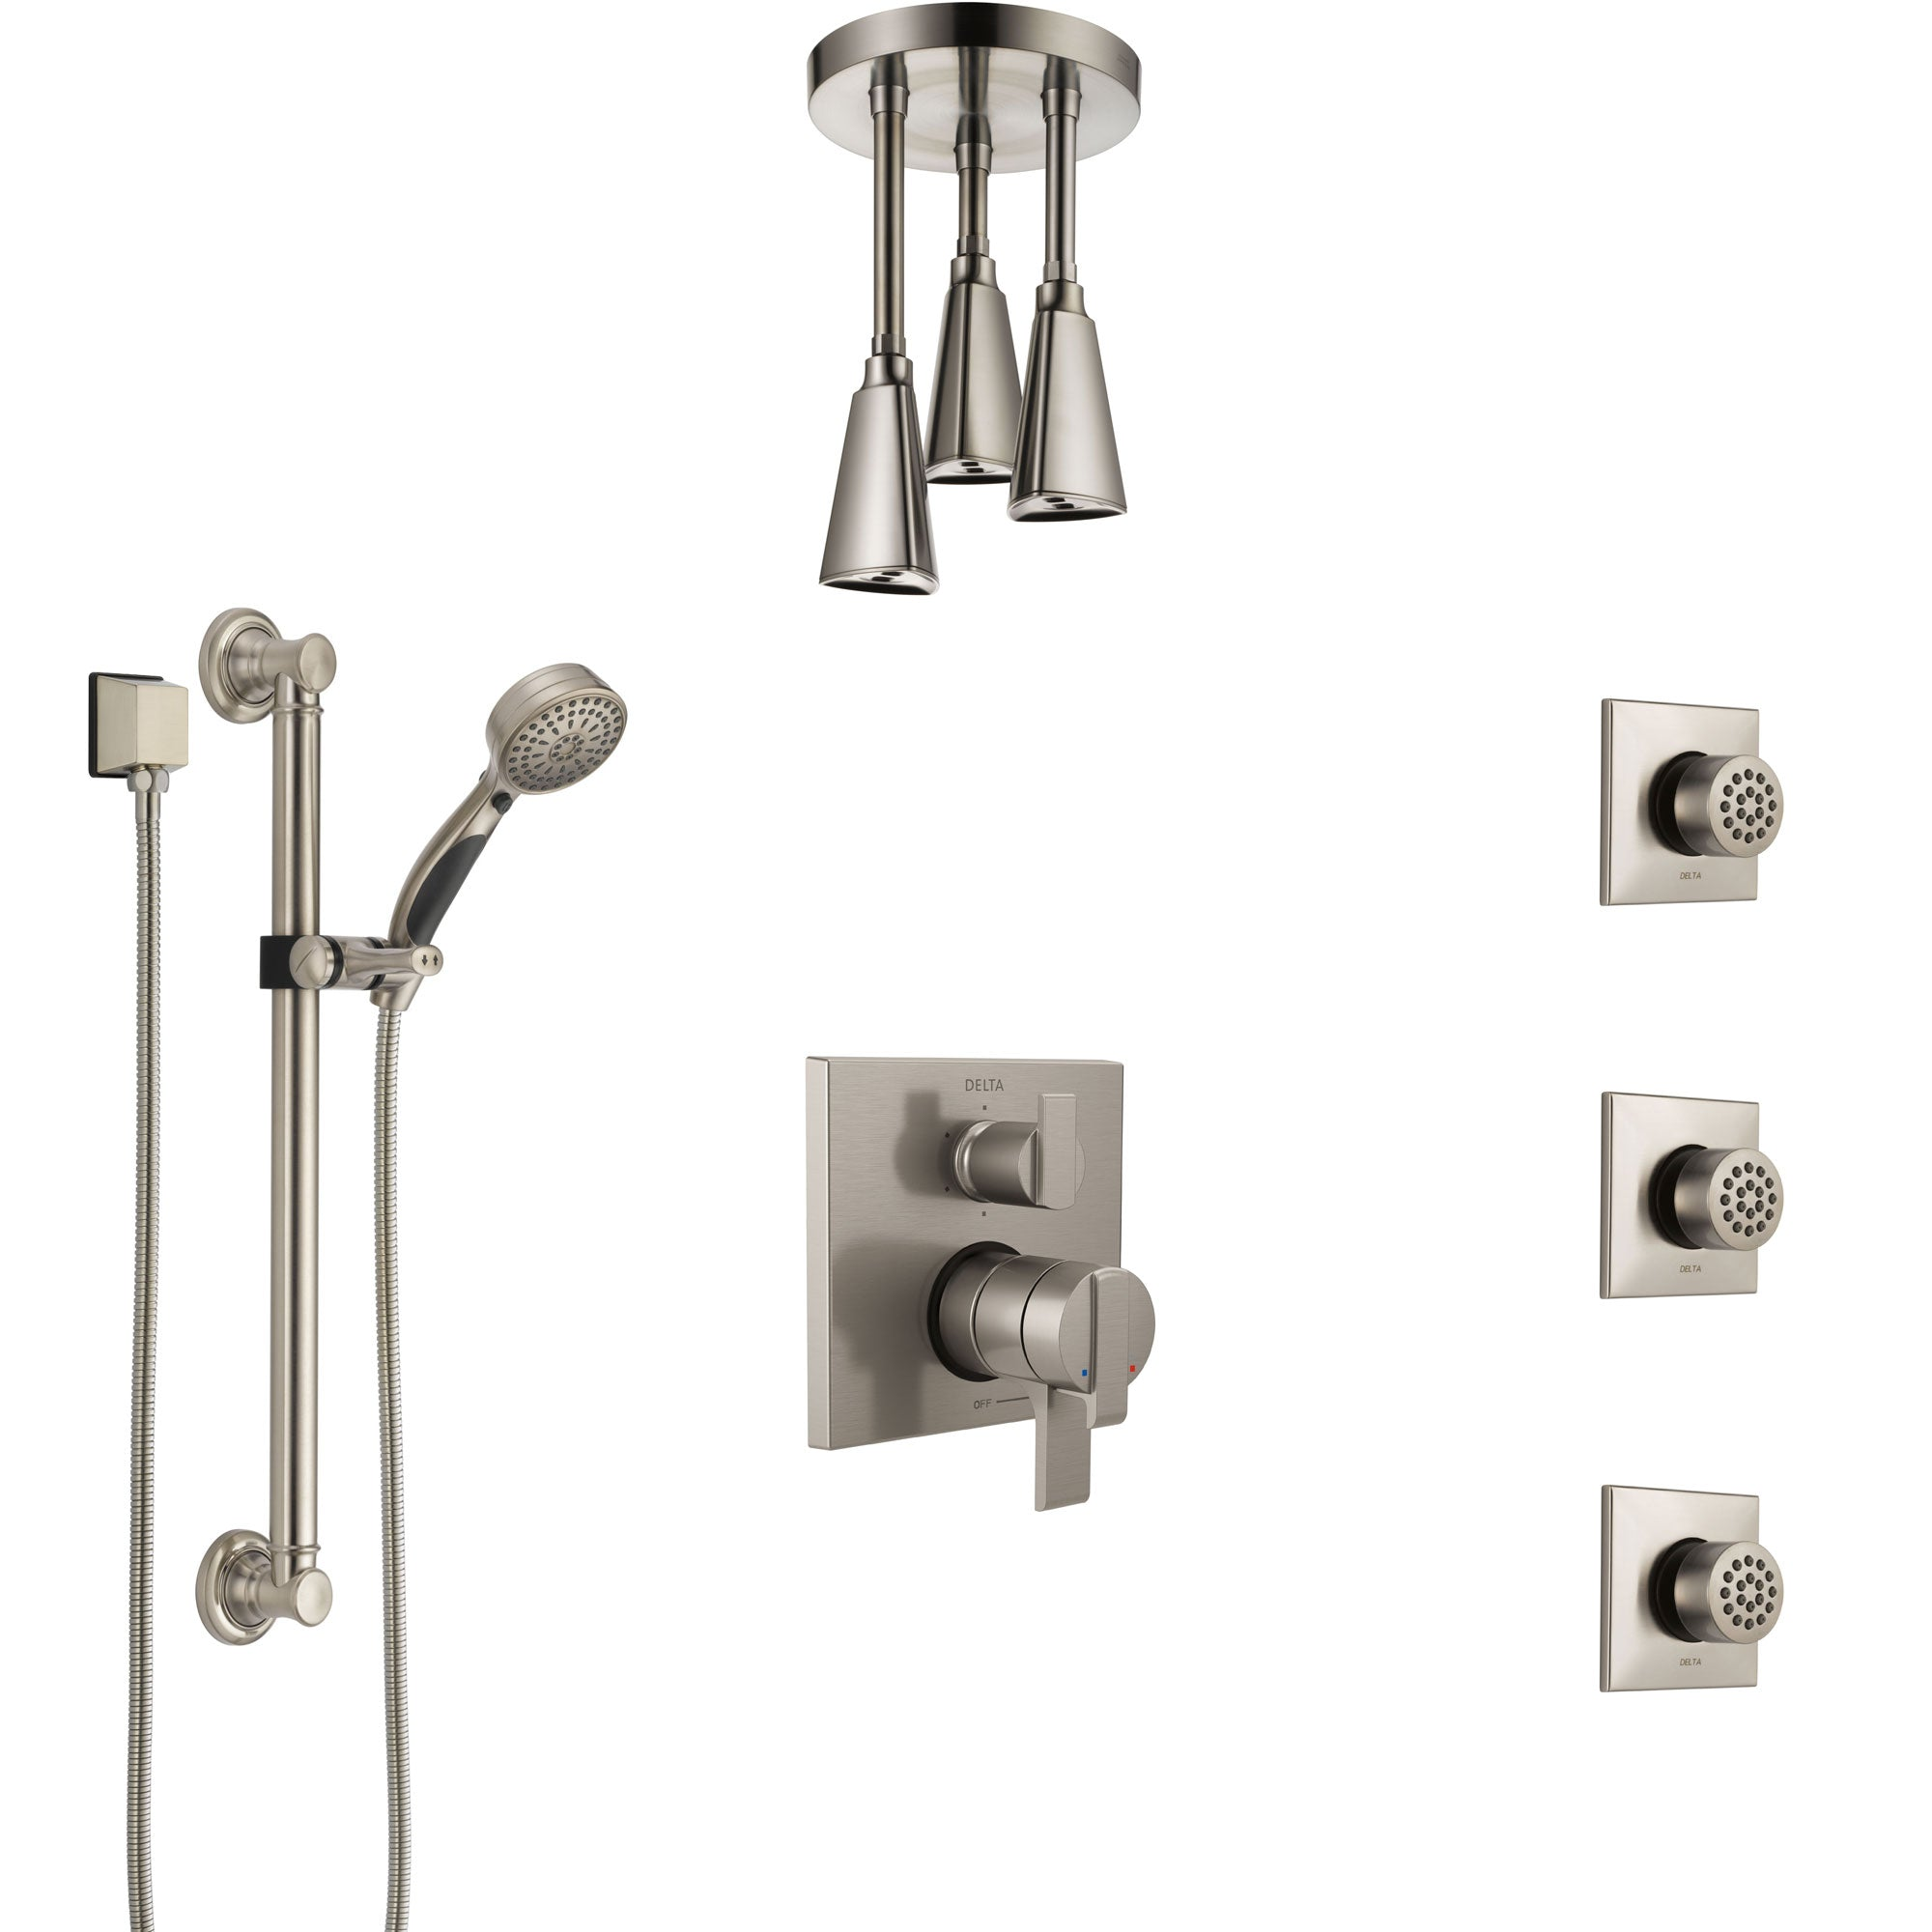 Delta Ara Dual Control Handle Stainless Steel Finish Shower System, Ceiling Showerhead, 3 Body Jets, Grab Bar Hand Spray SS27967SS8